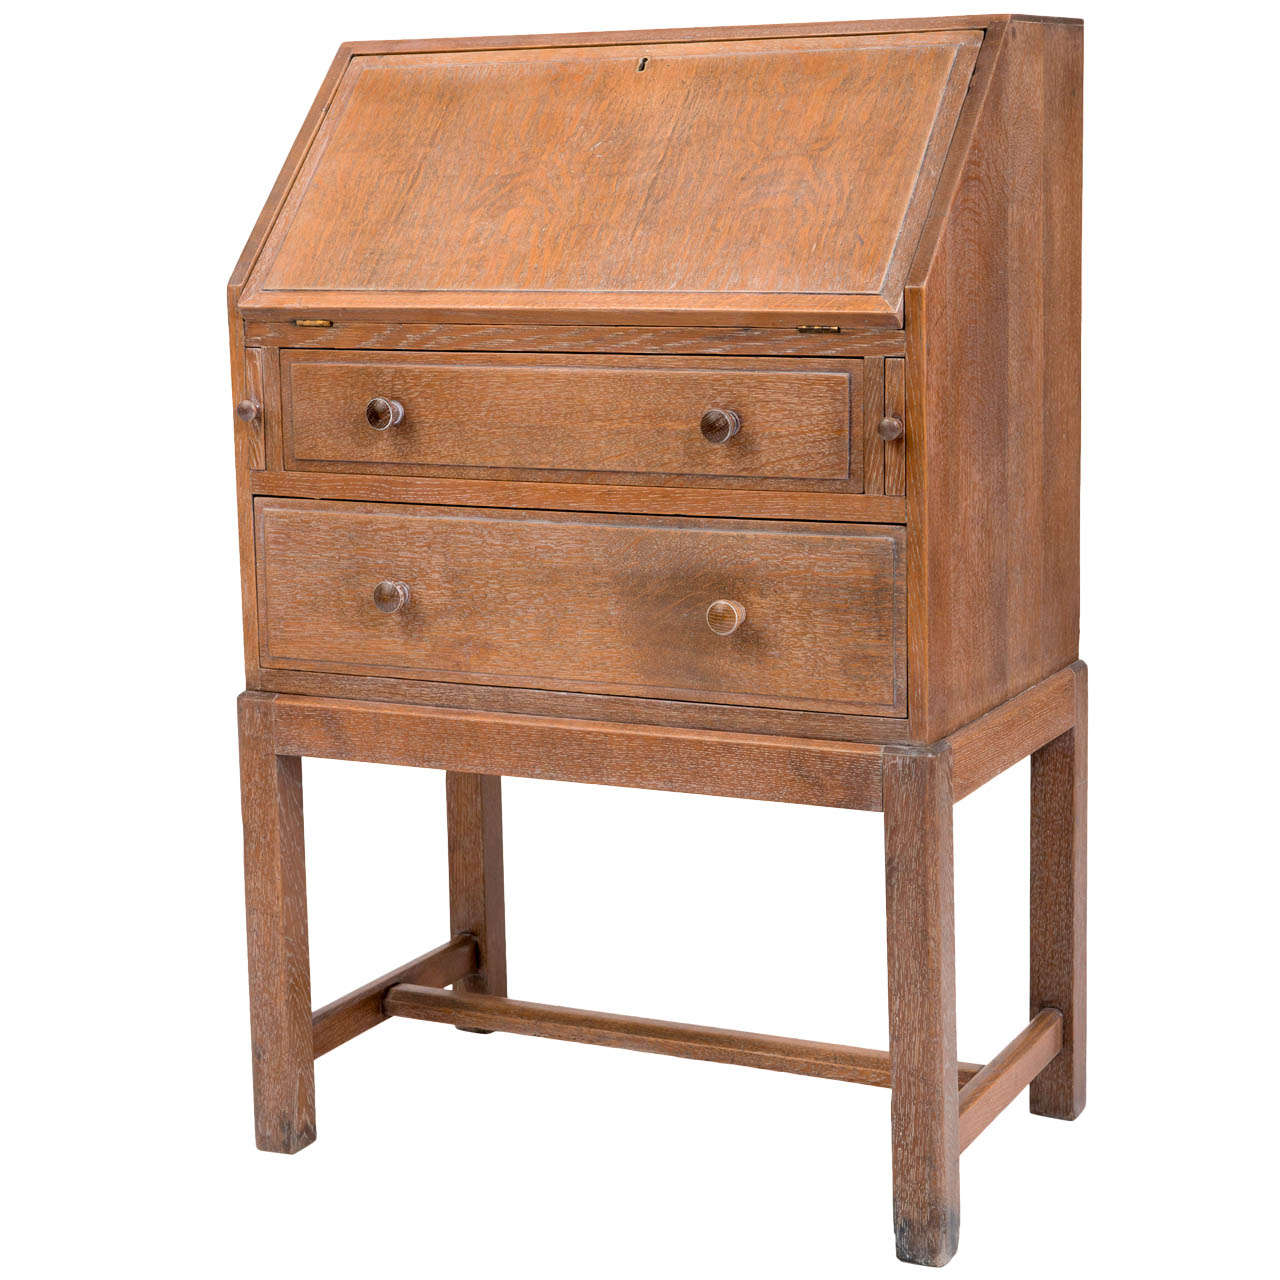 Heals and son limed oak fold down bureau england circa for Bureau hardware